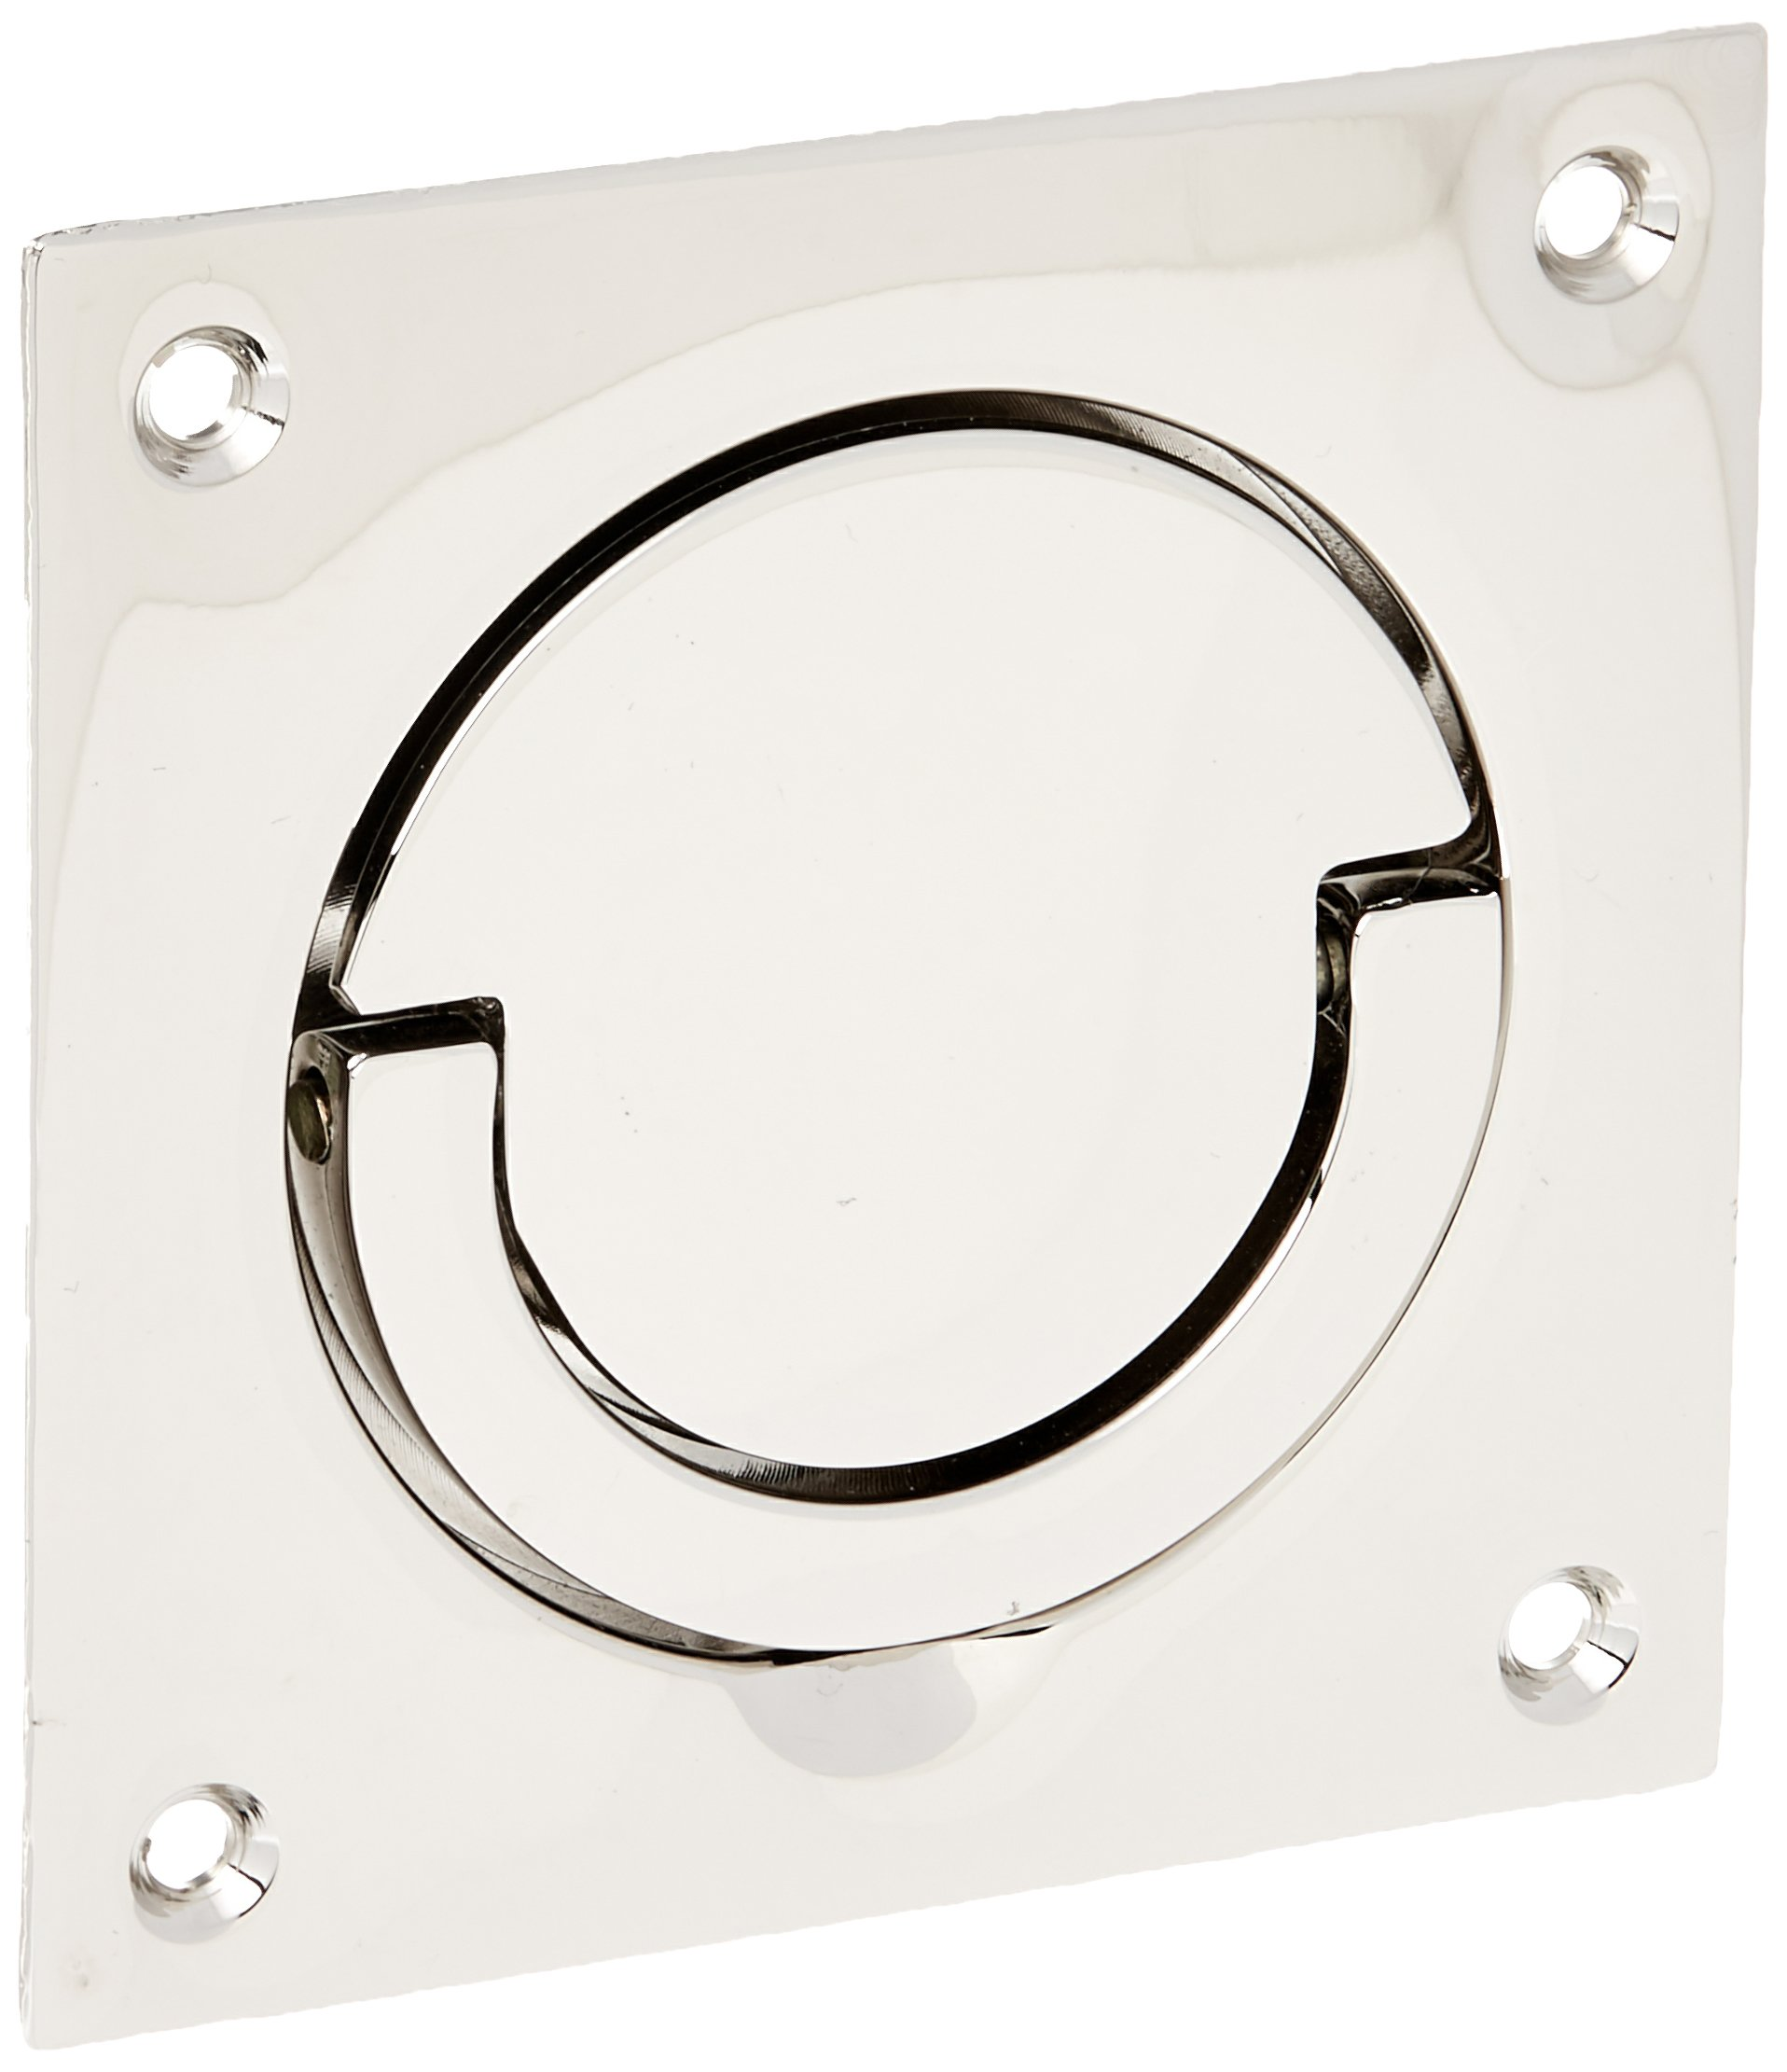 Baldwin 0397140SOL Flush Ring Pull with Solid Spindle, Bright Nickel